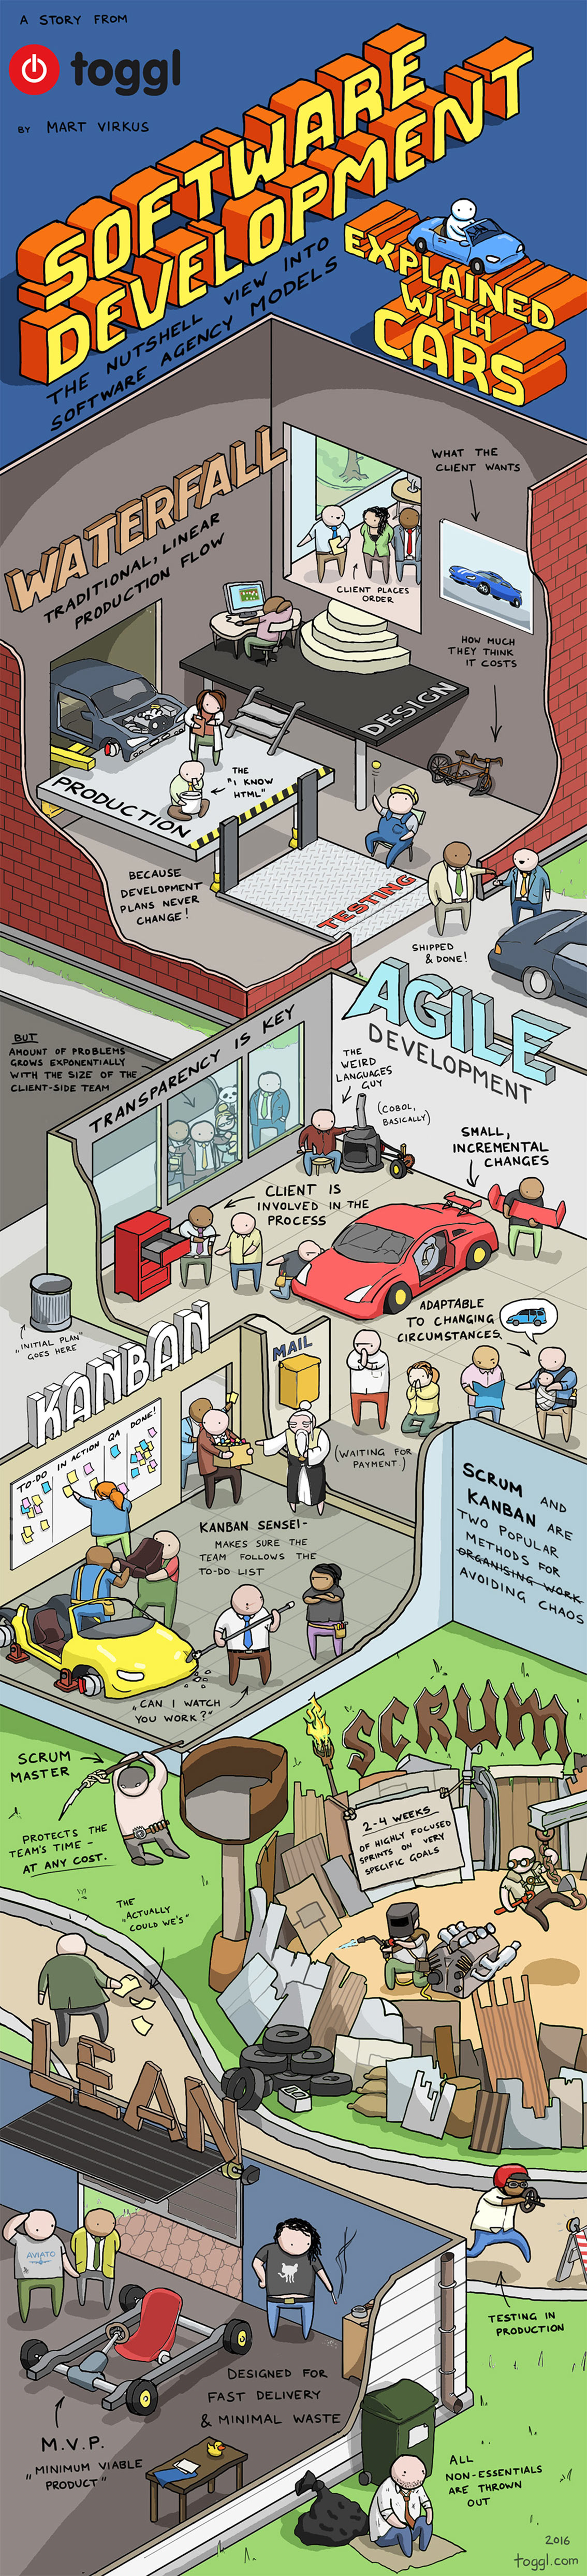 Software Development Explained with Cars - Startup Infographic